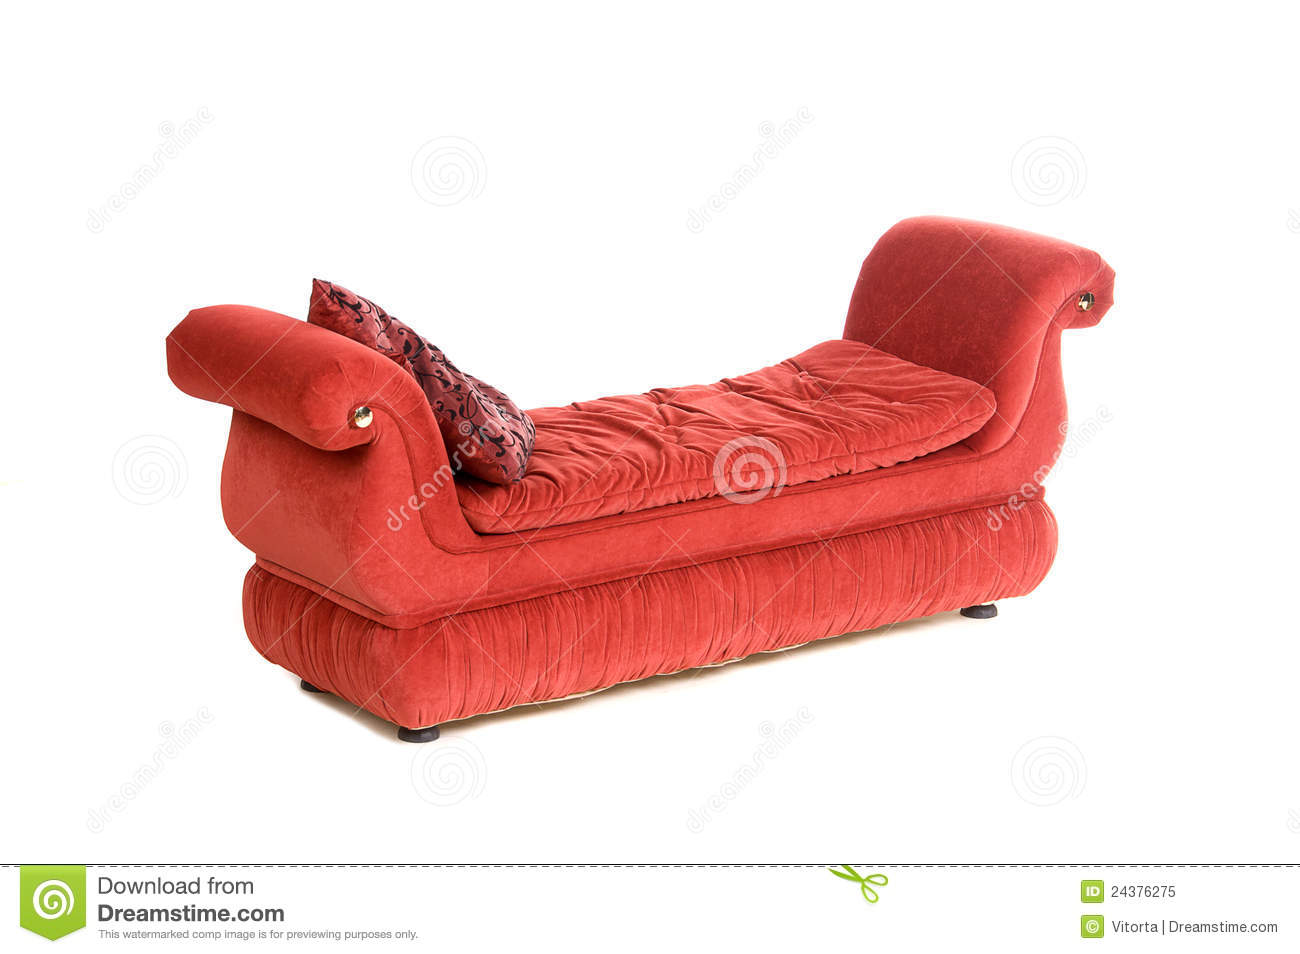 Retro Inflatable Sofa Red Sofa In Retro Style Stock Image Image Of Isolated 24376275